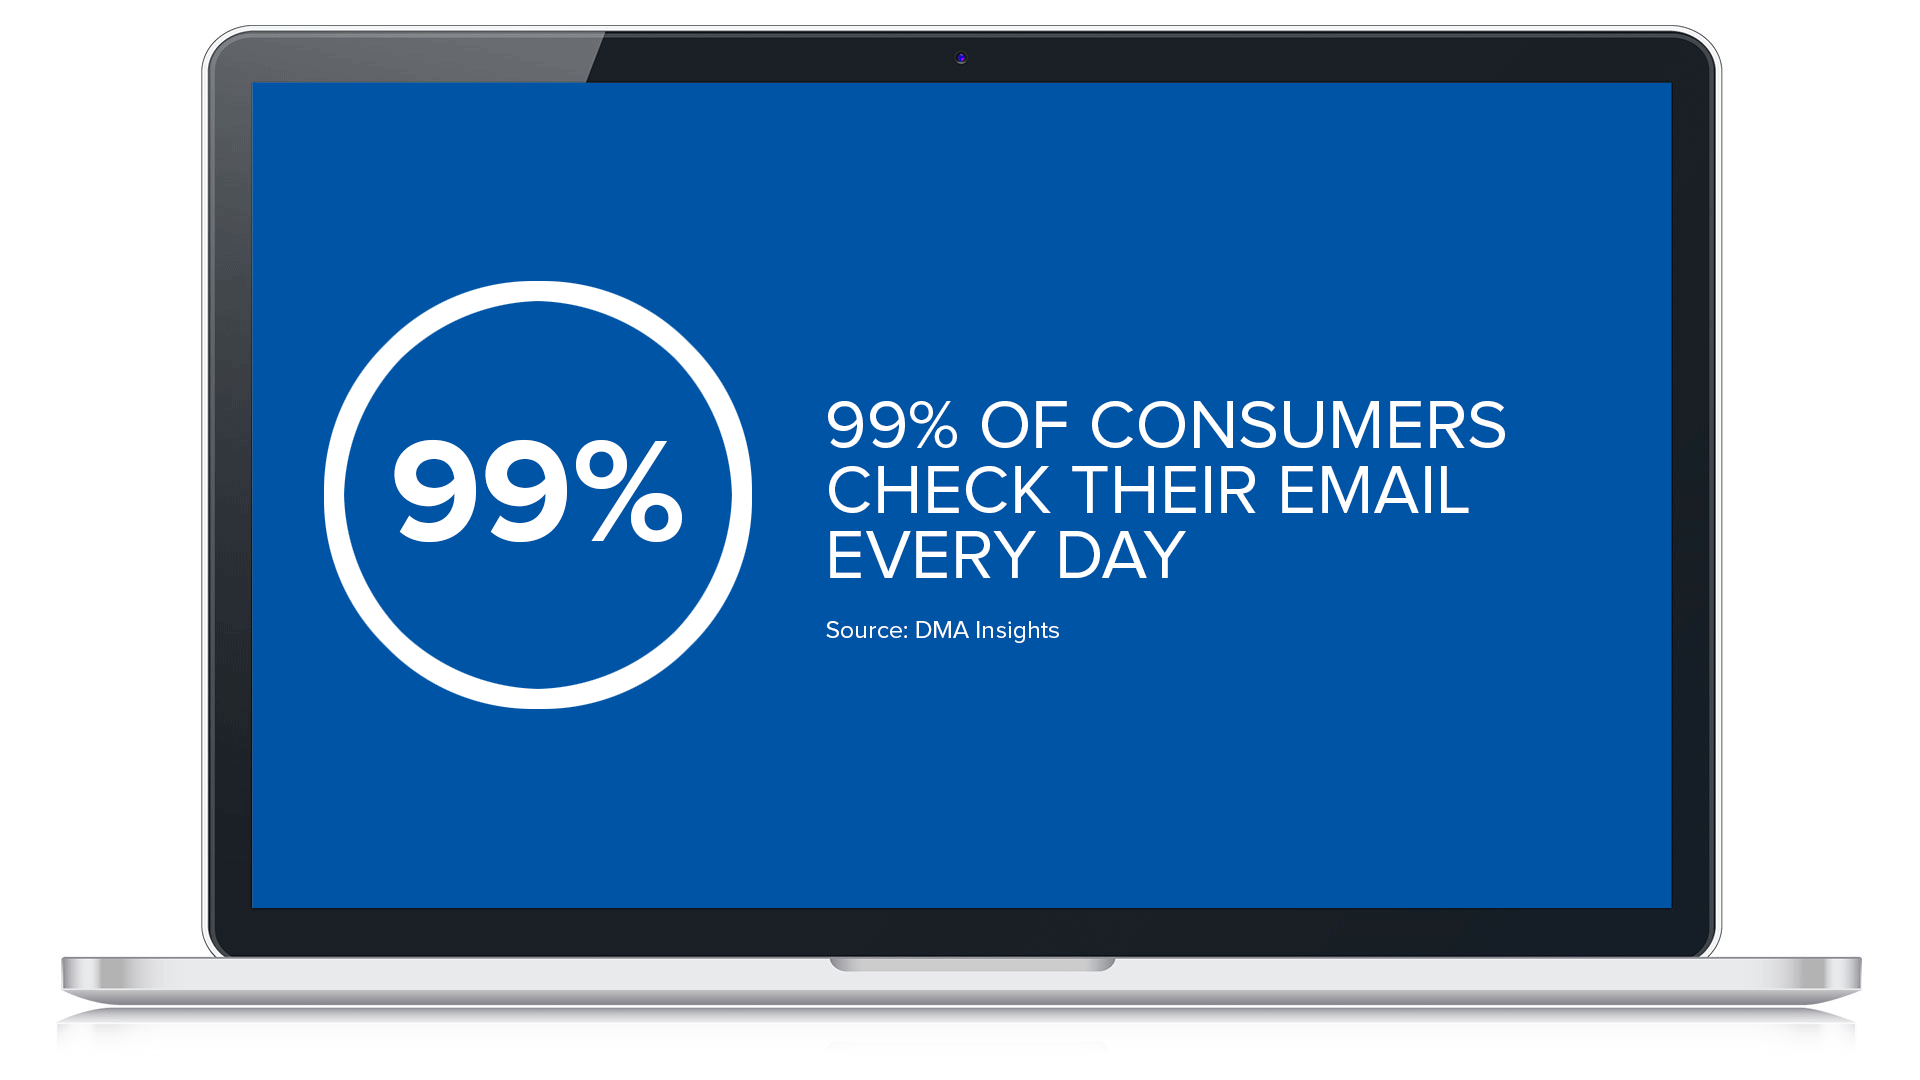 Supporting stats for targeted email marketing services